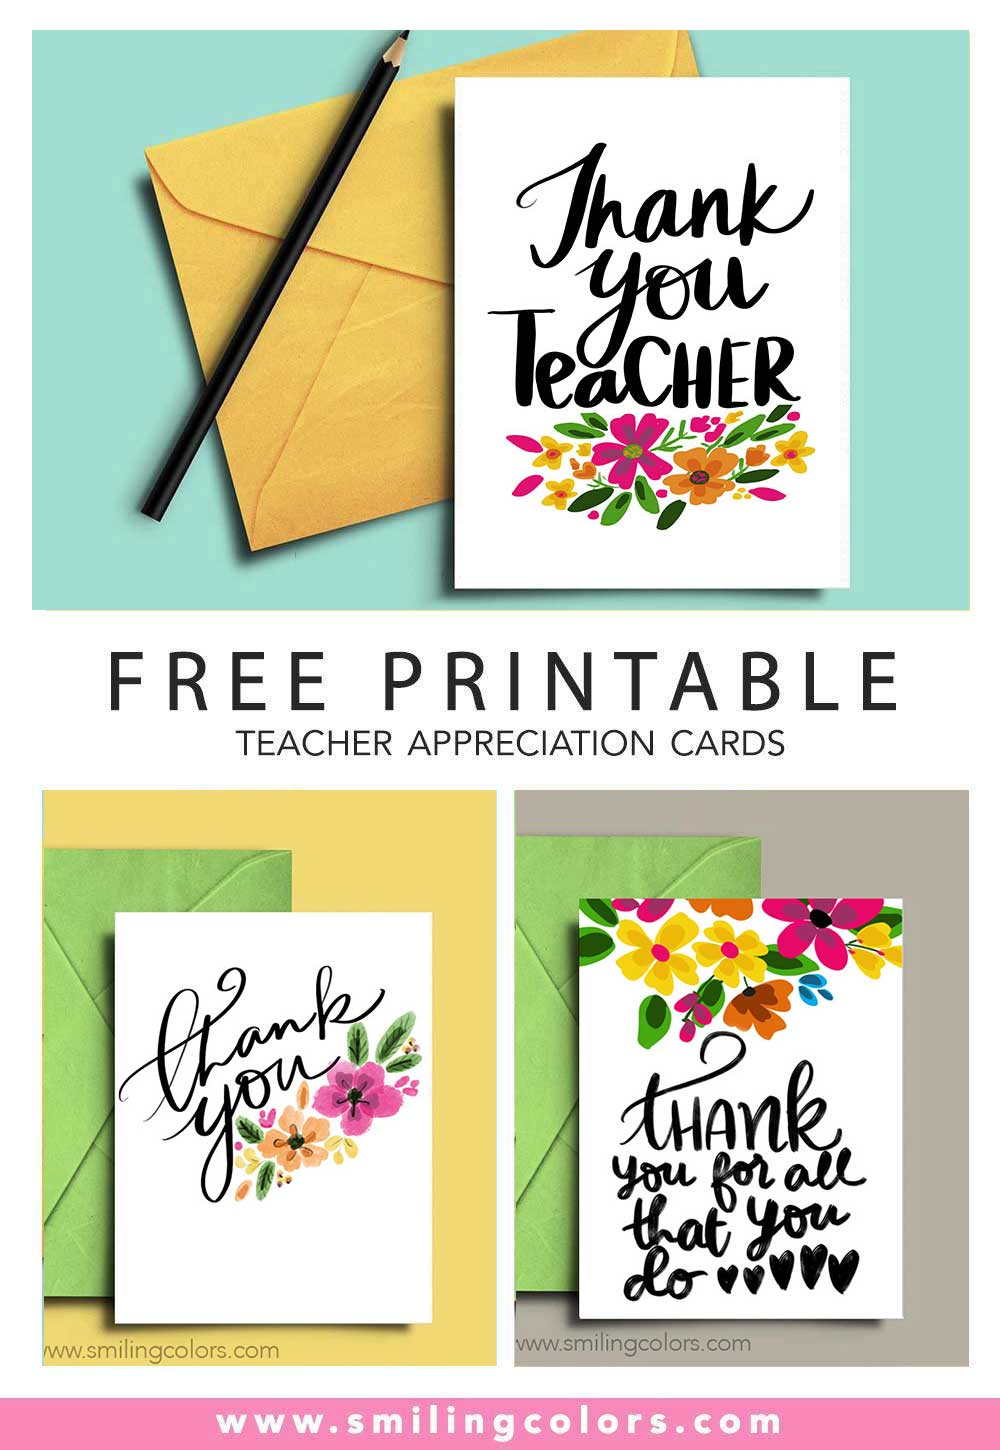 photograph regarding Teacher Appreciation Card Printable referred to as Thank yourself instructor: A mounted of Totally free printable be aware playing cards